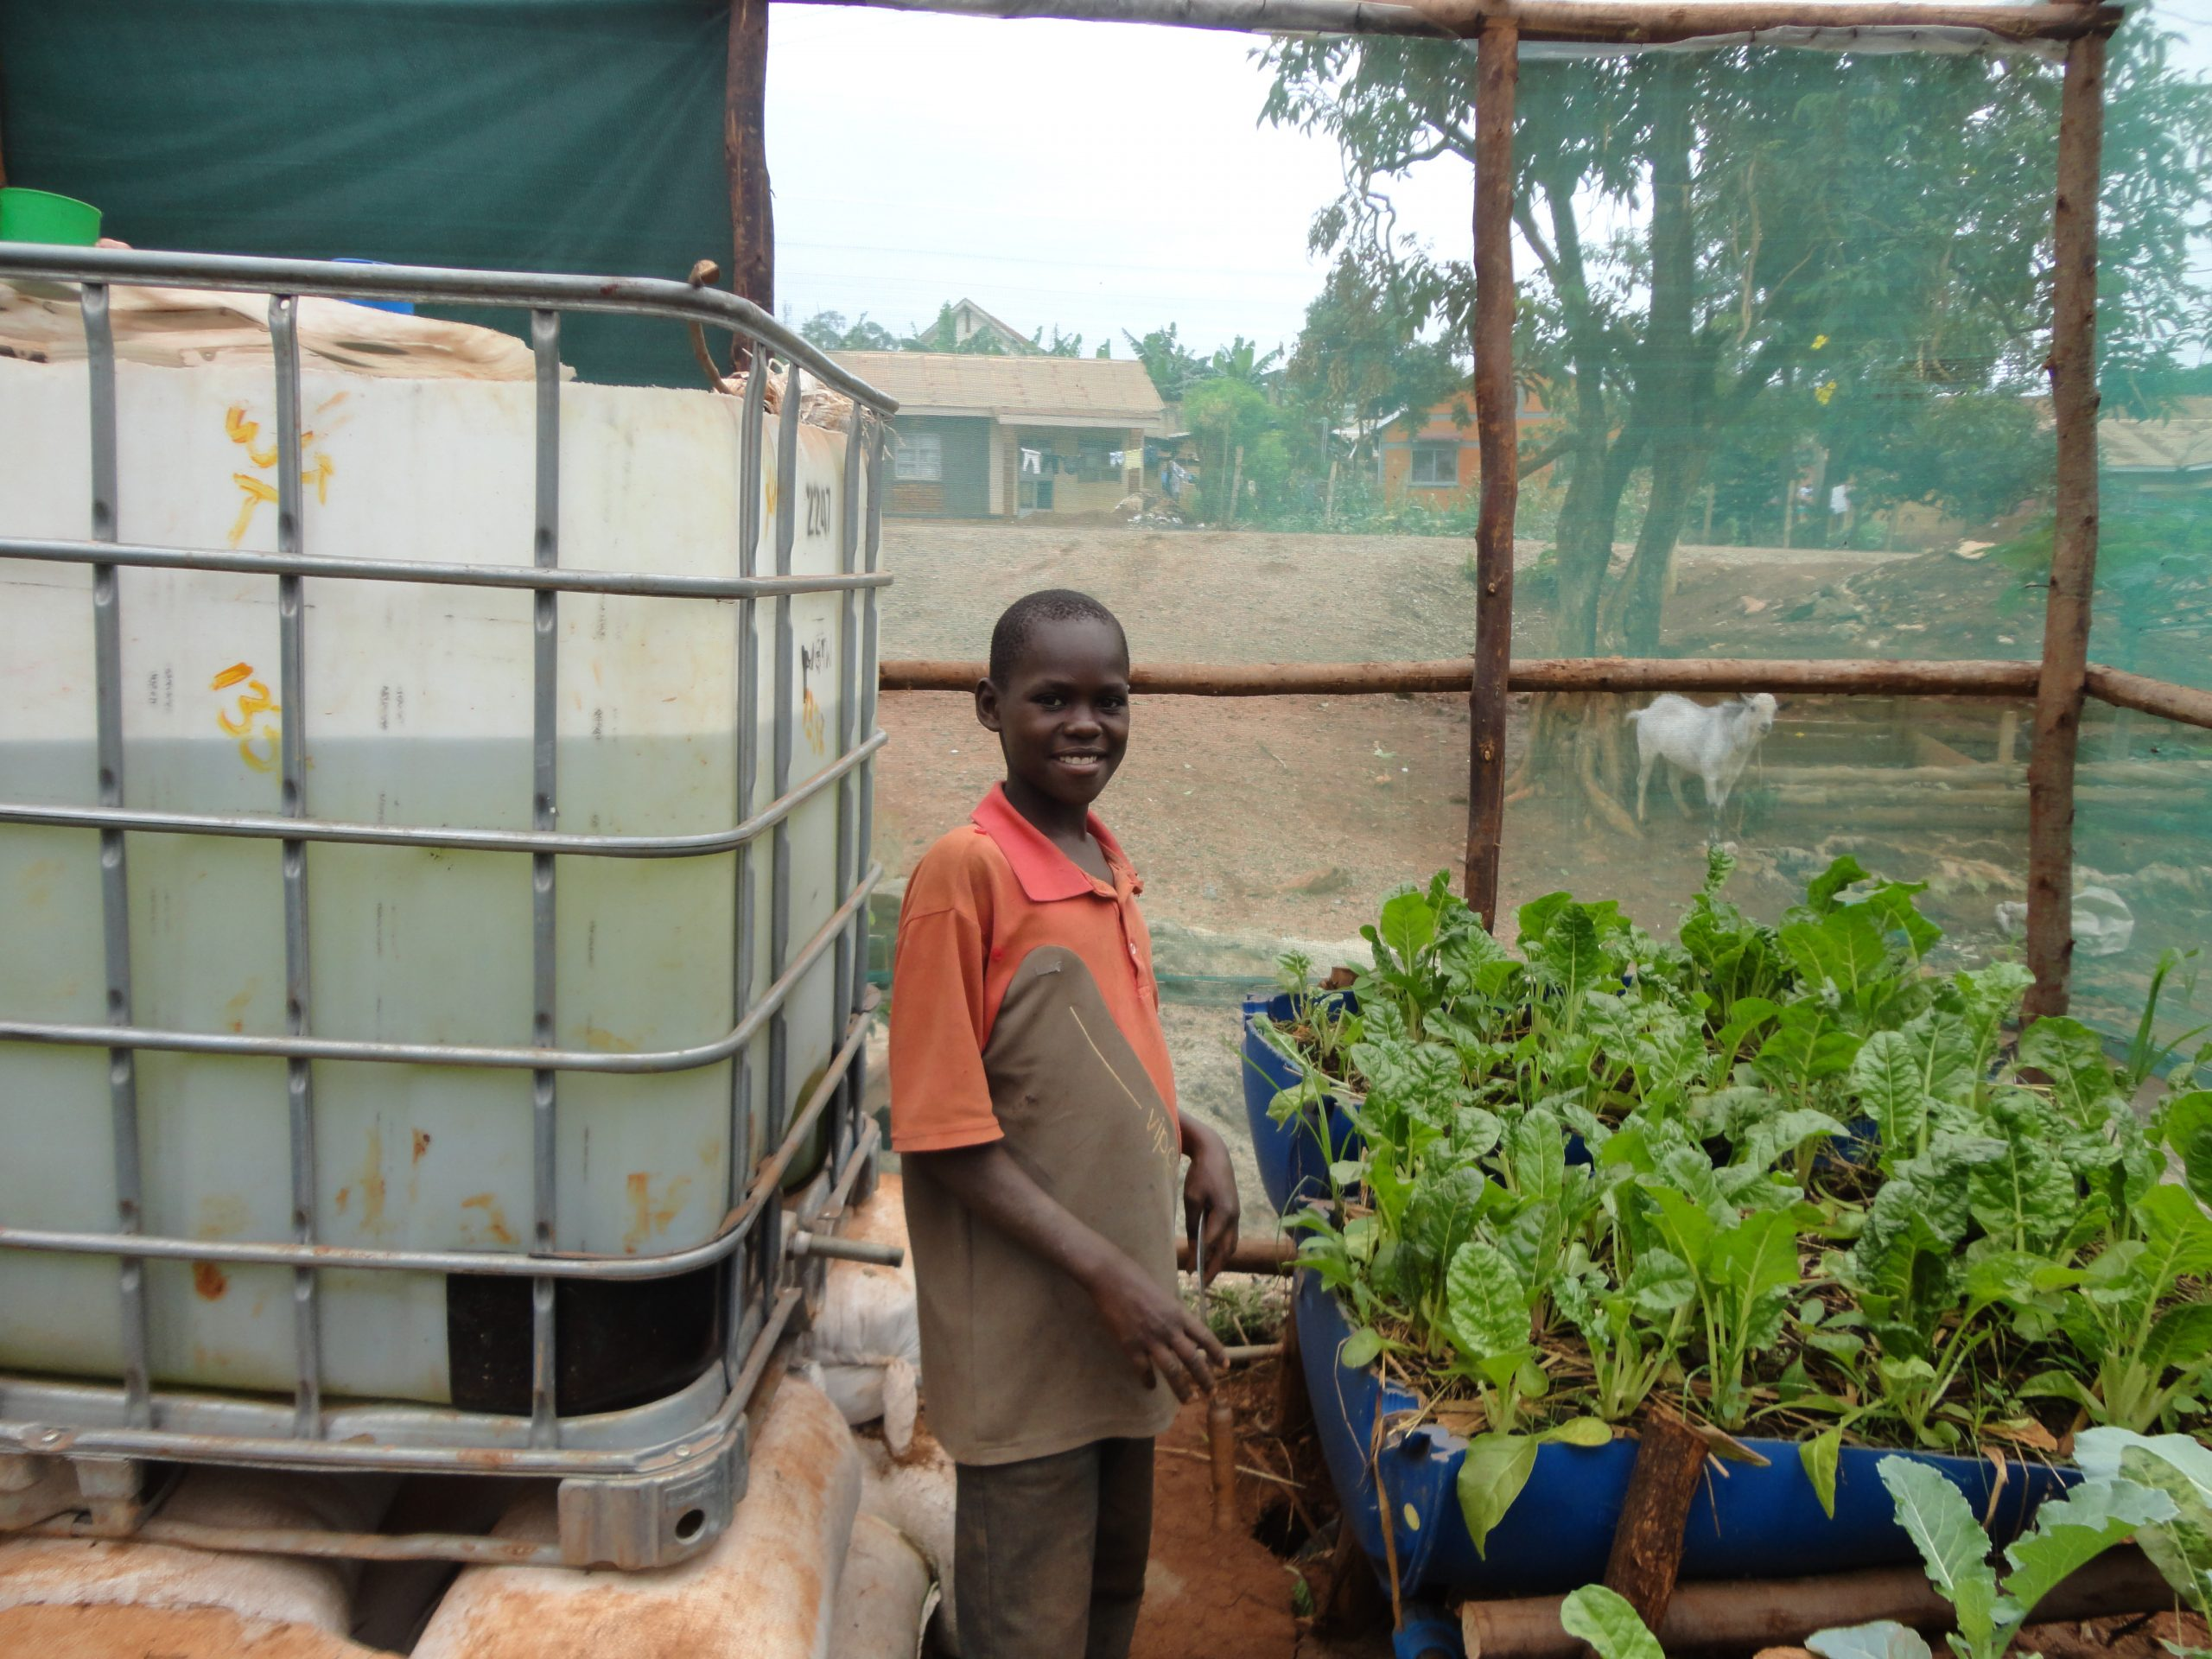 refugees seek economic inclusion by growing crops via aquaponics with WGI